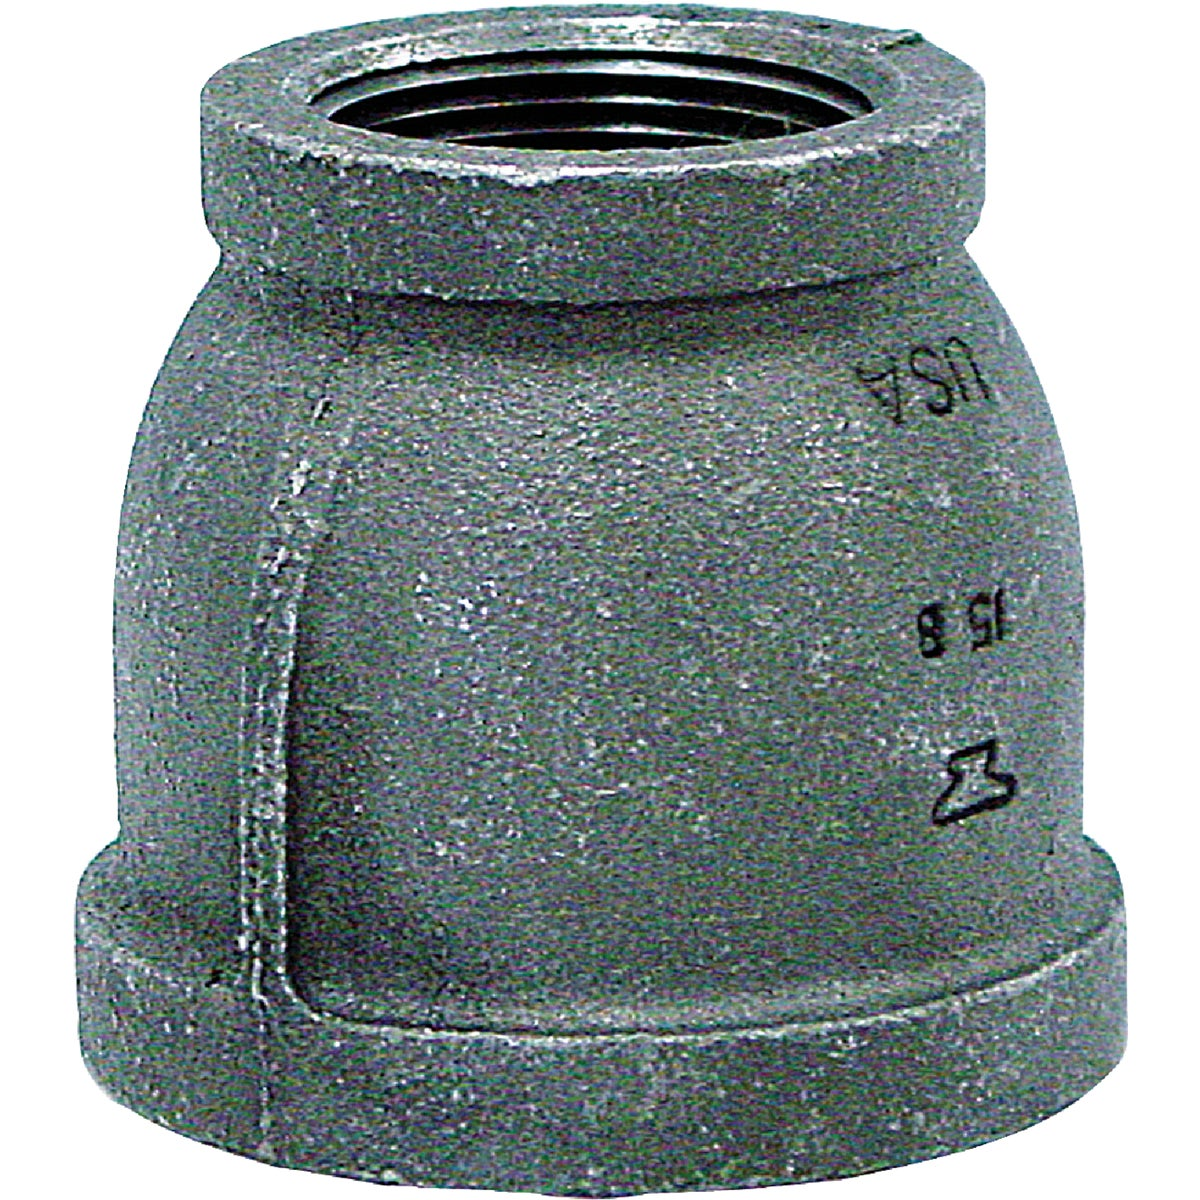 1-1/2X1 BLK COUPLING